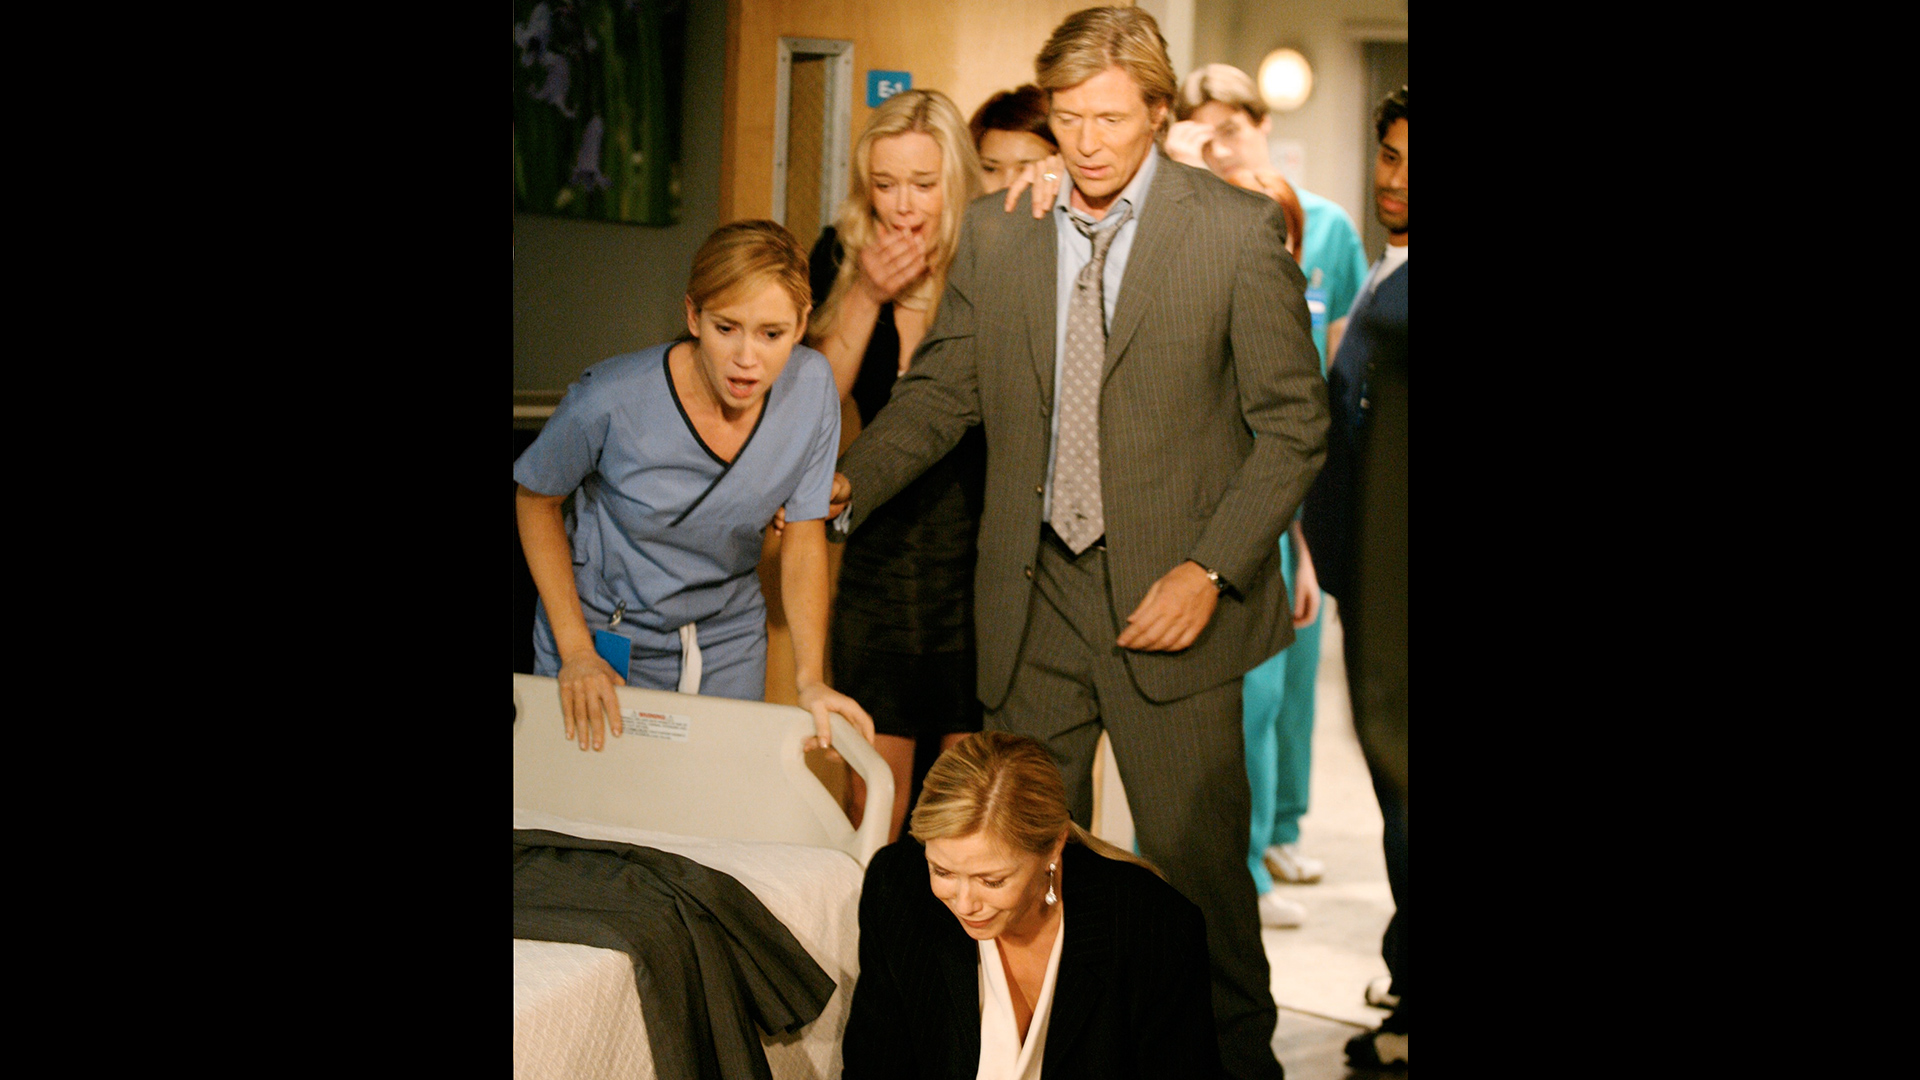 The Logans were devastated to learn of Storm's decision to end his life in order to save his sister.